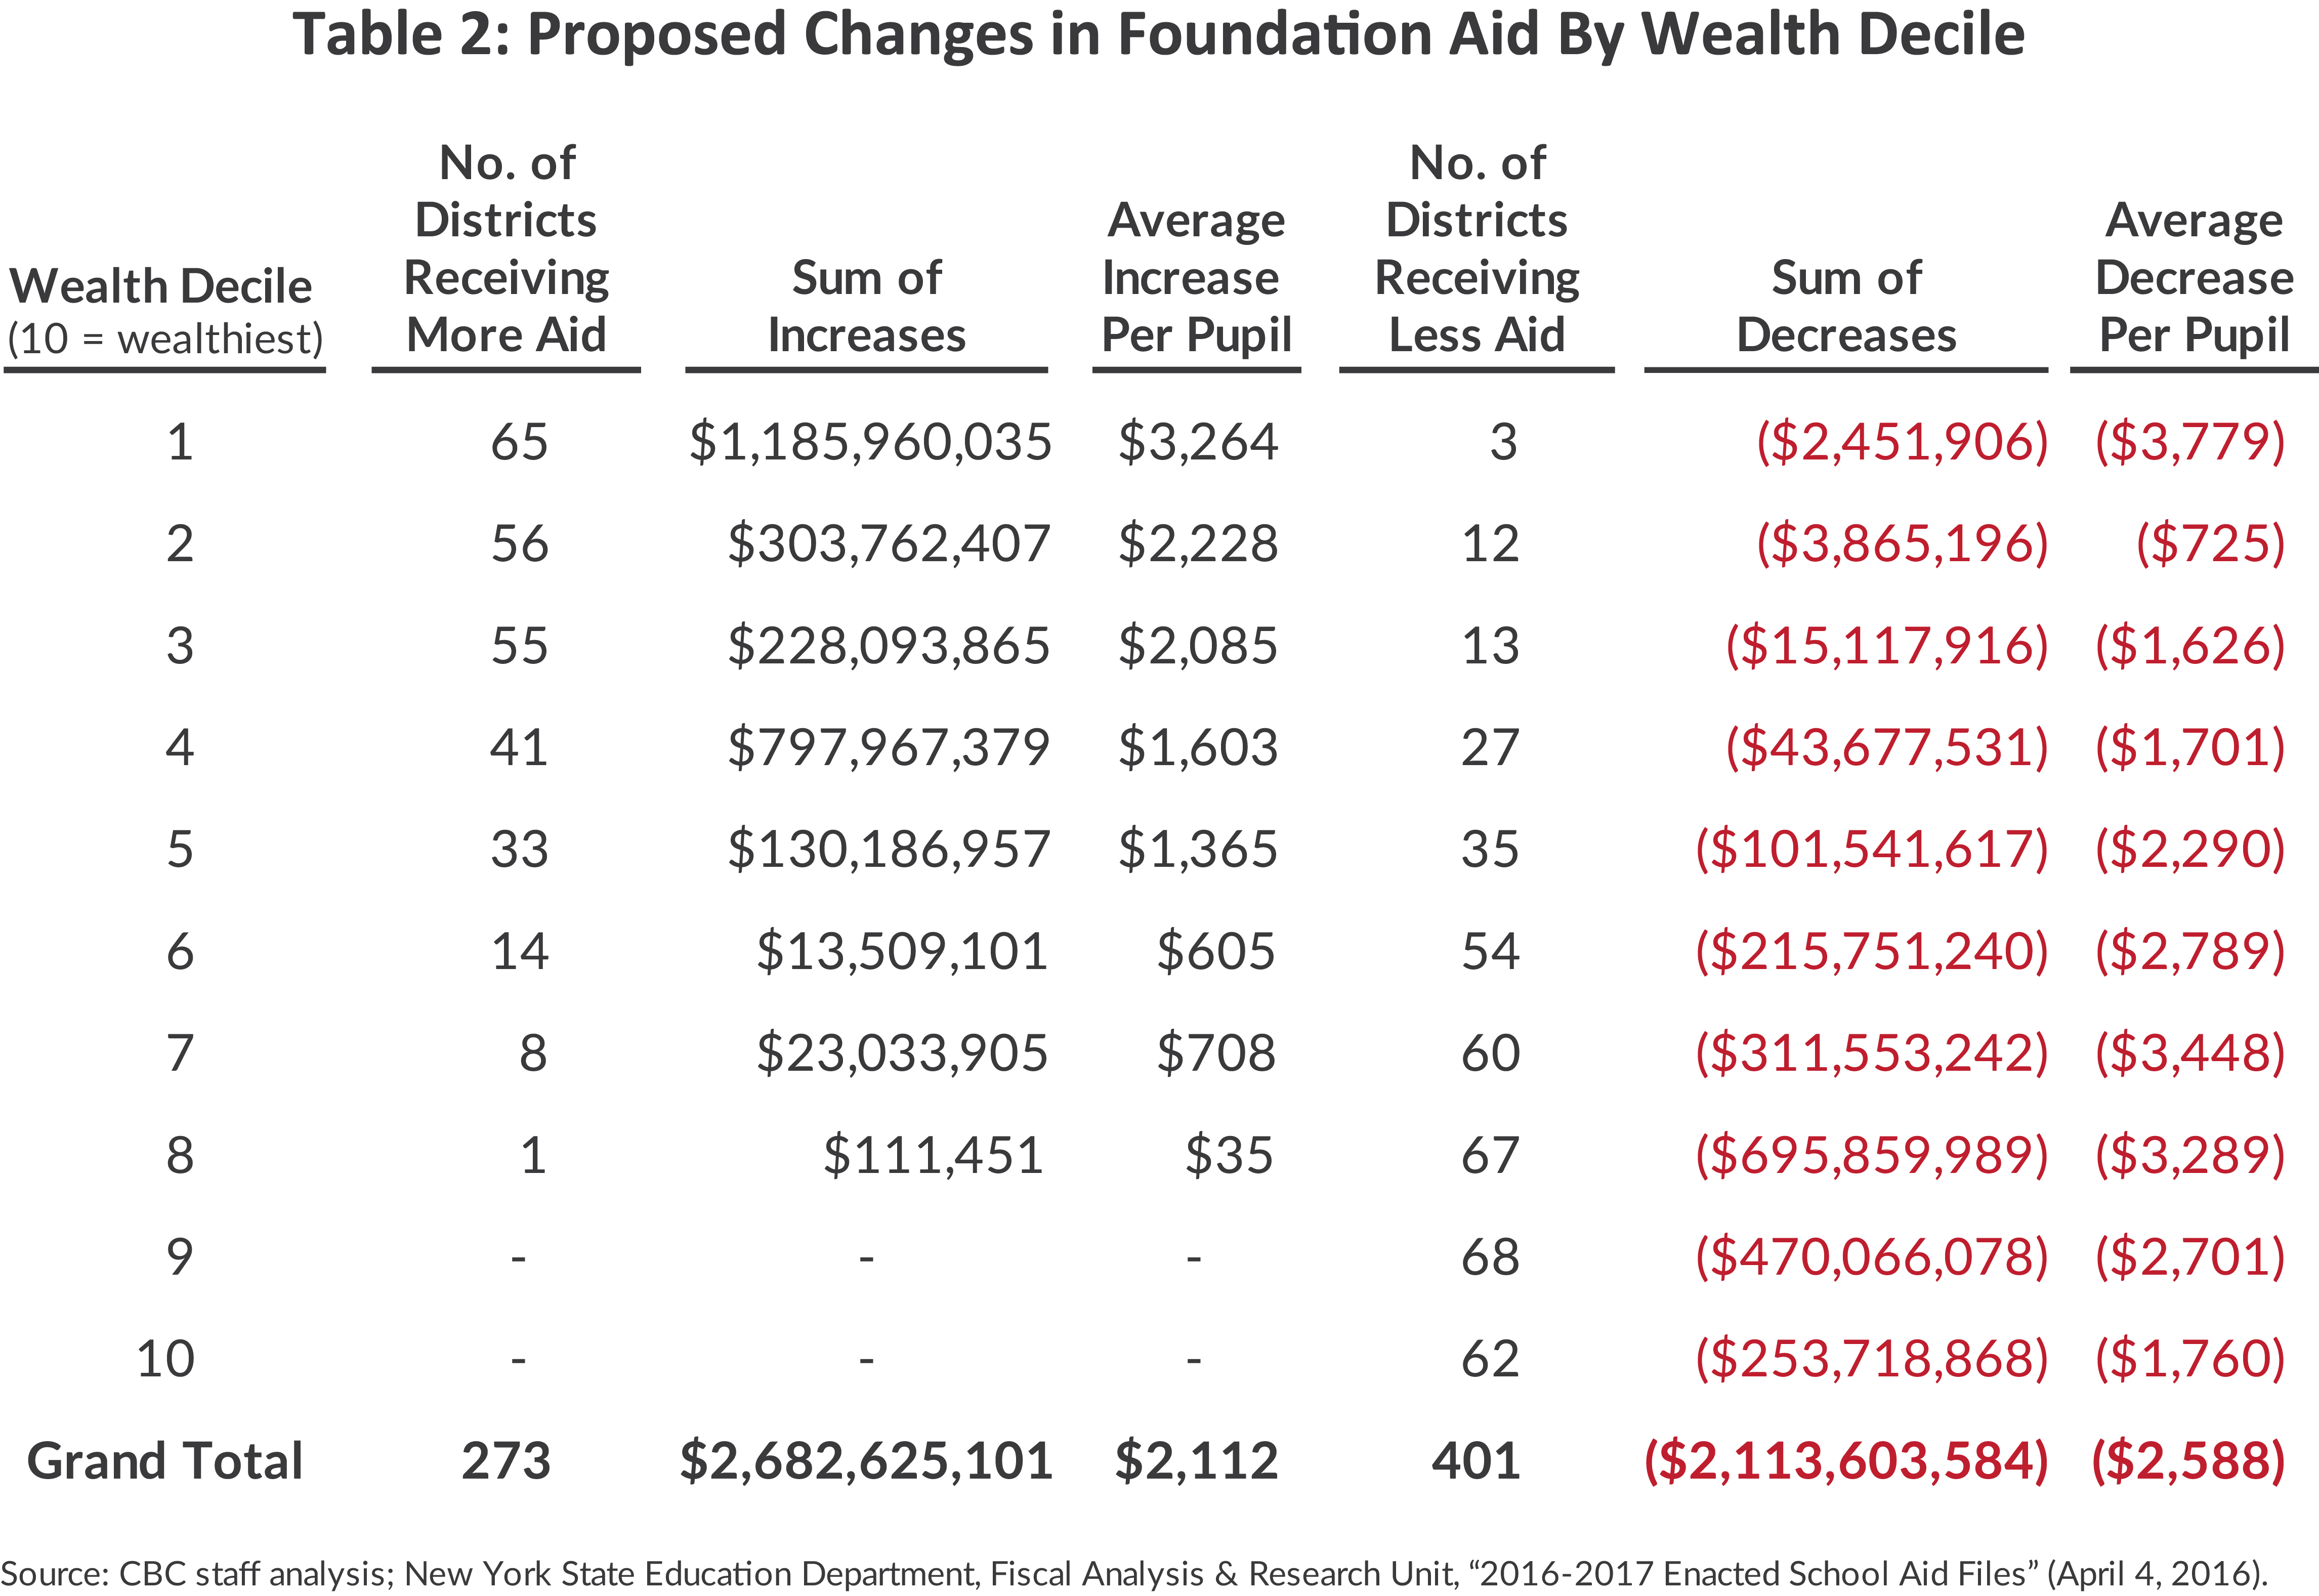 Table: Proposed Changes in Foundation Aid by Wealth Decile